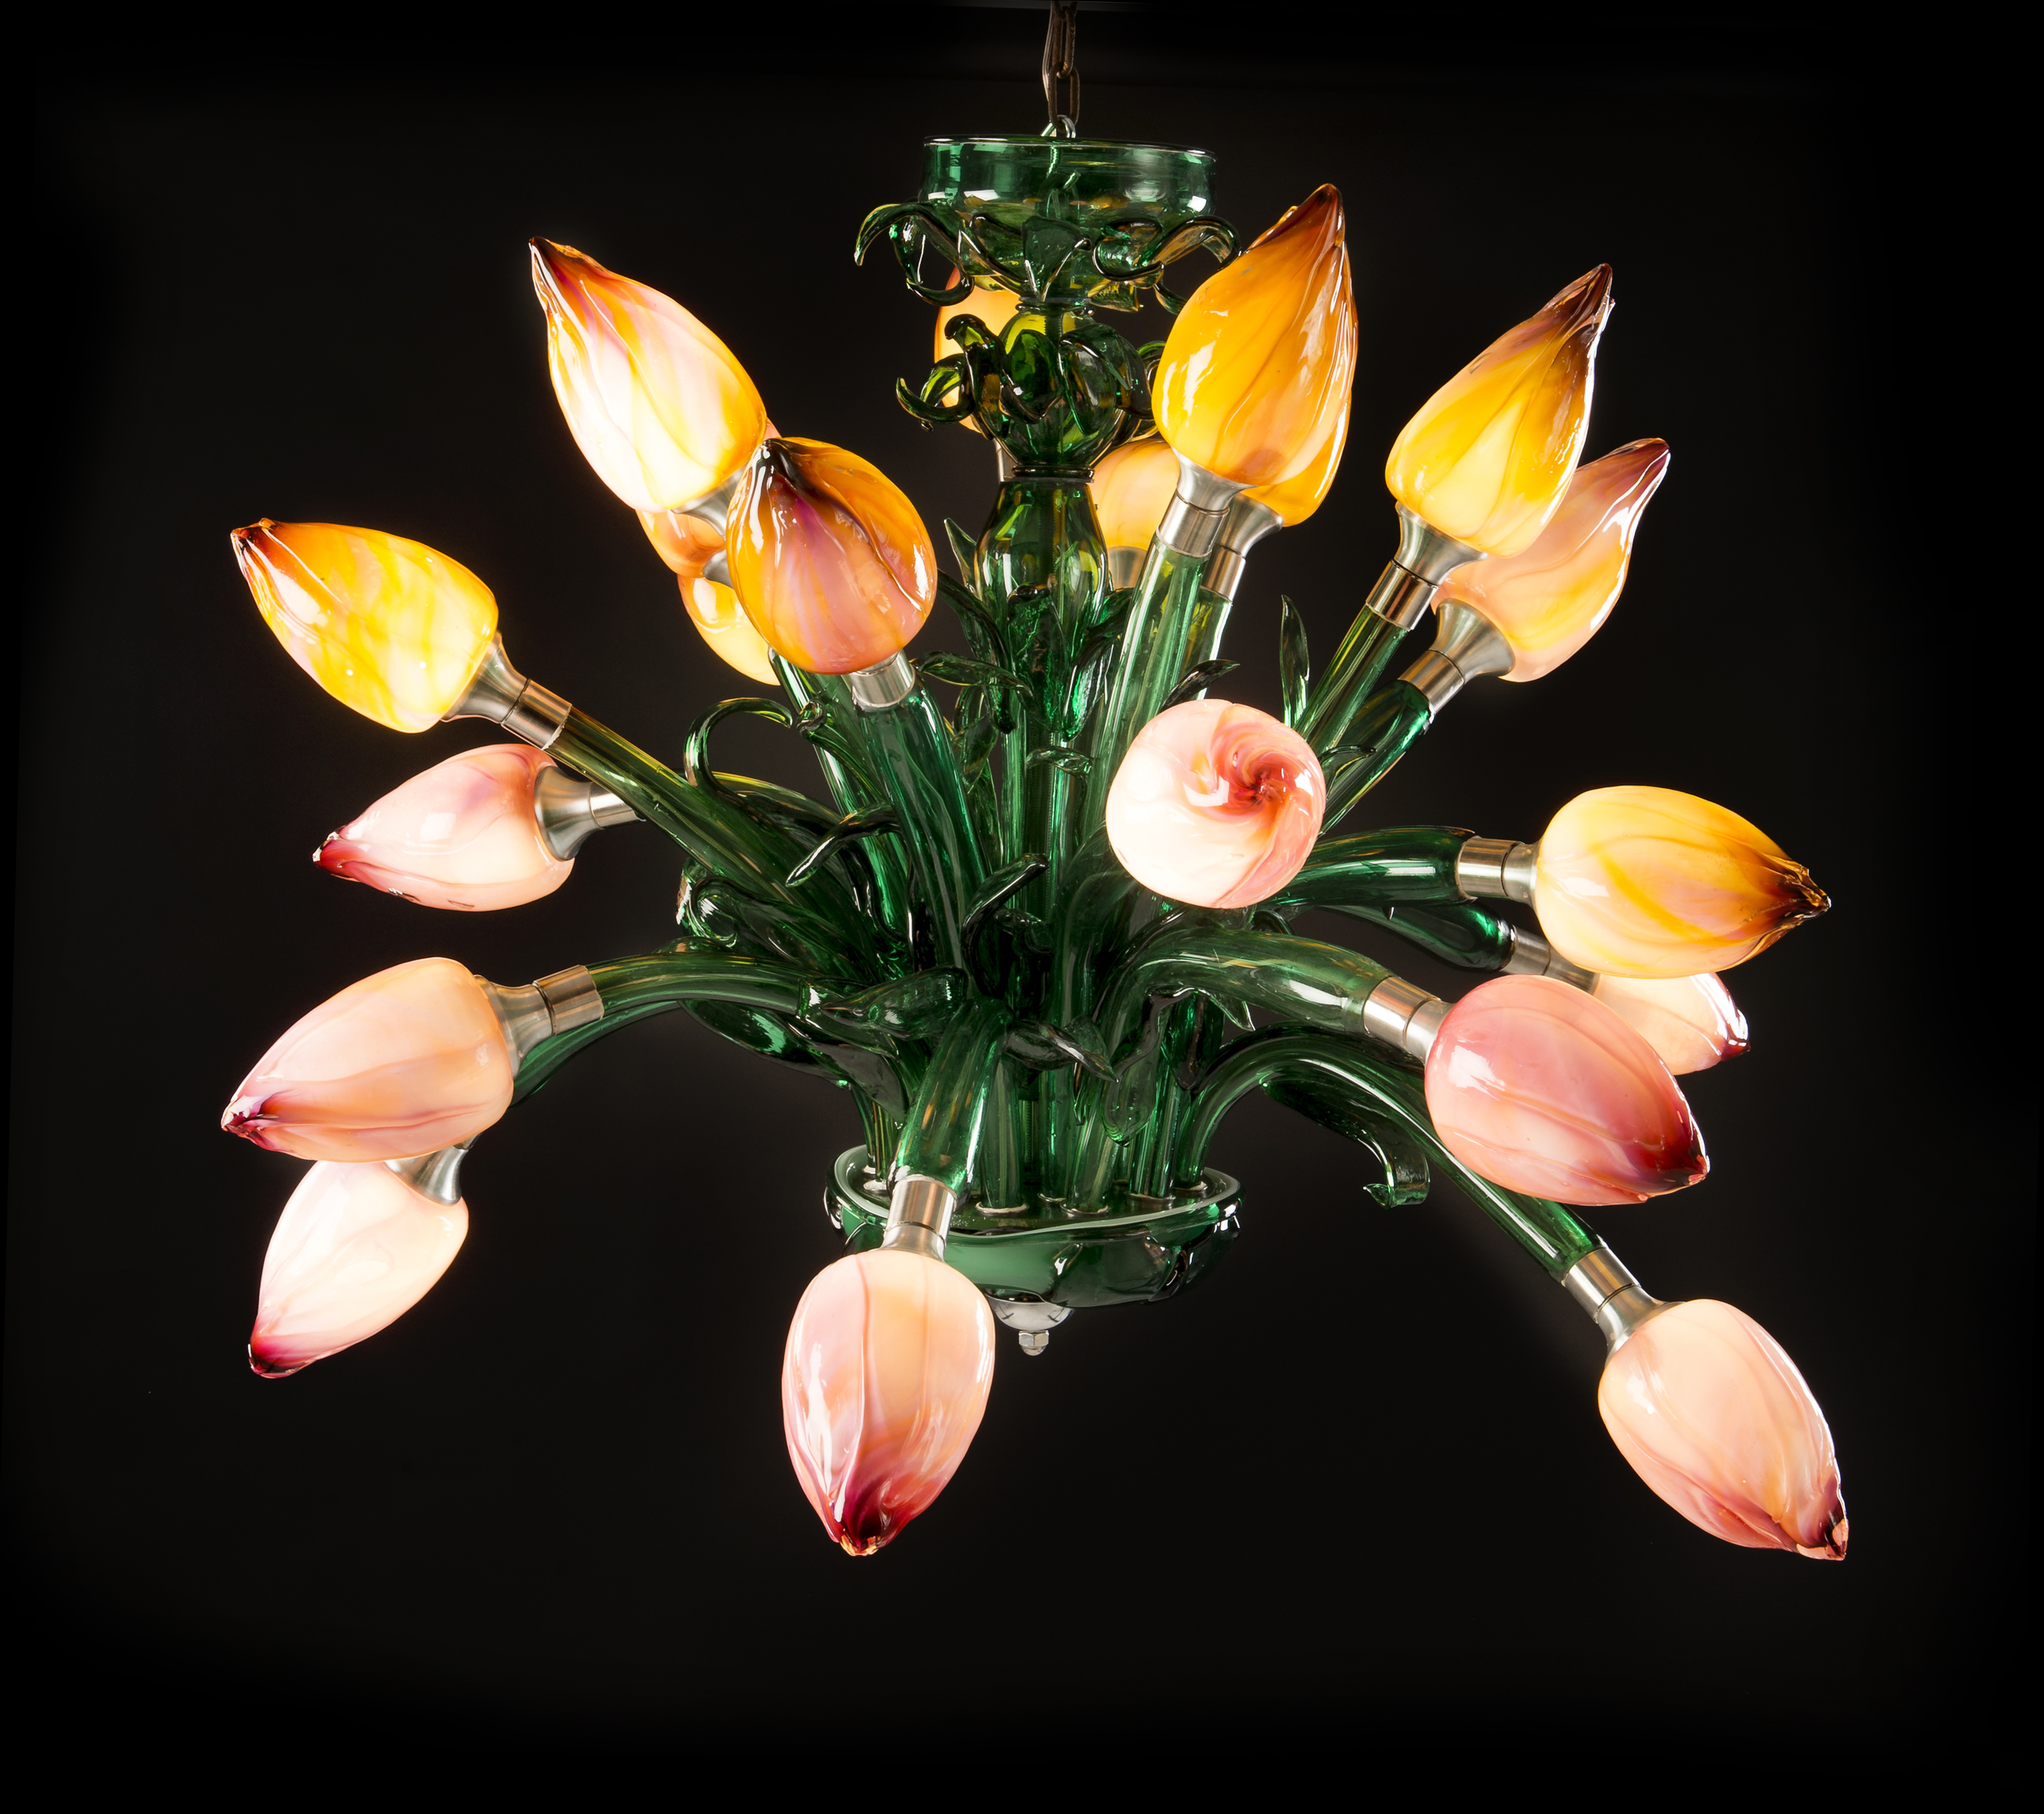 Tulip fever chandelier tim shaw glass artist share aloadofball Image collections